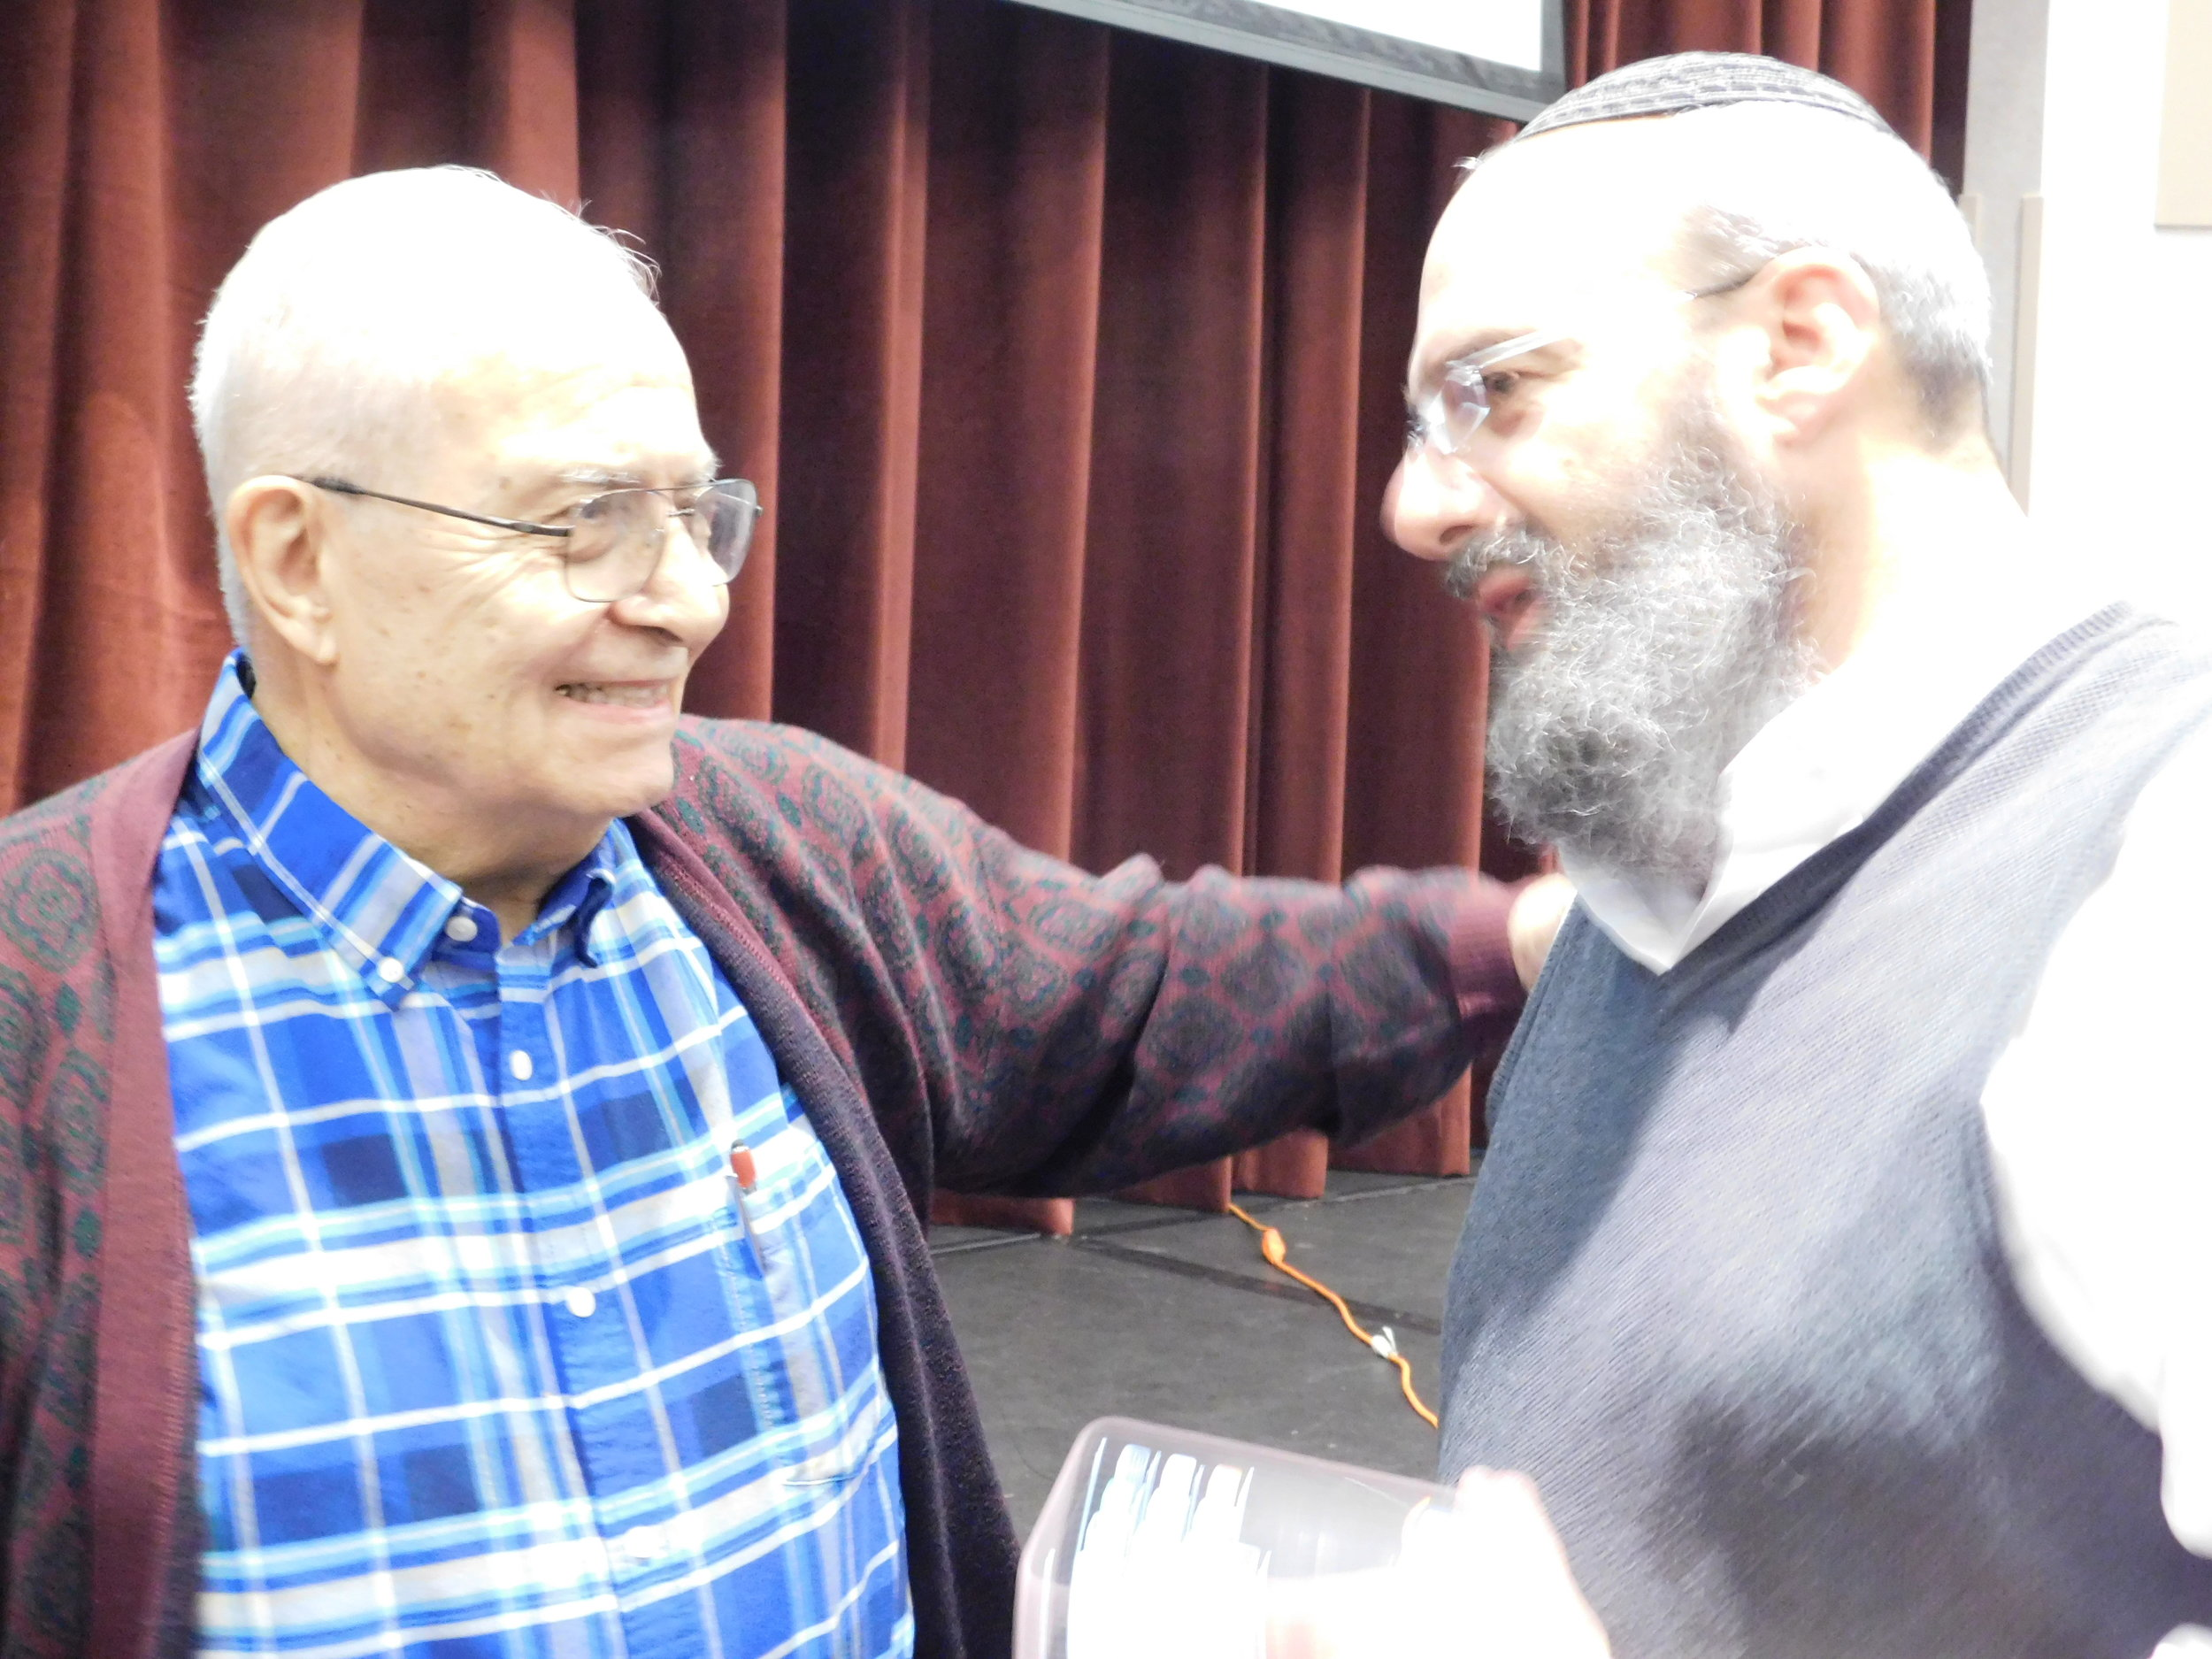 May 27, 2019 with Shmuel Bowman